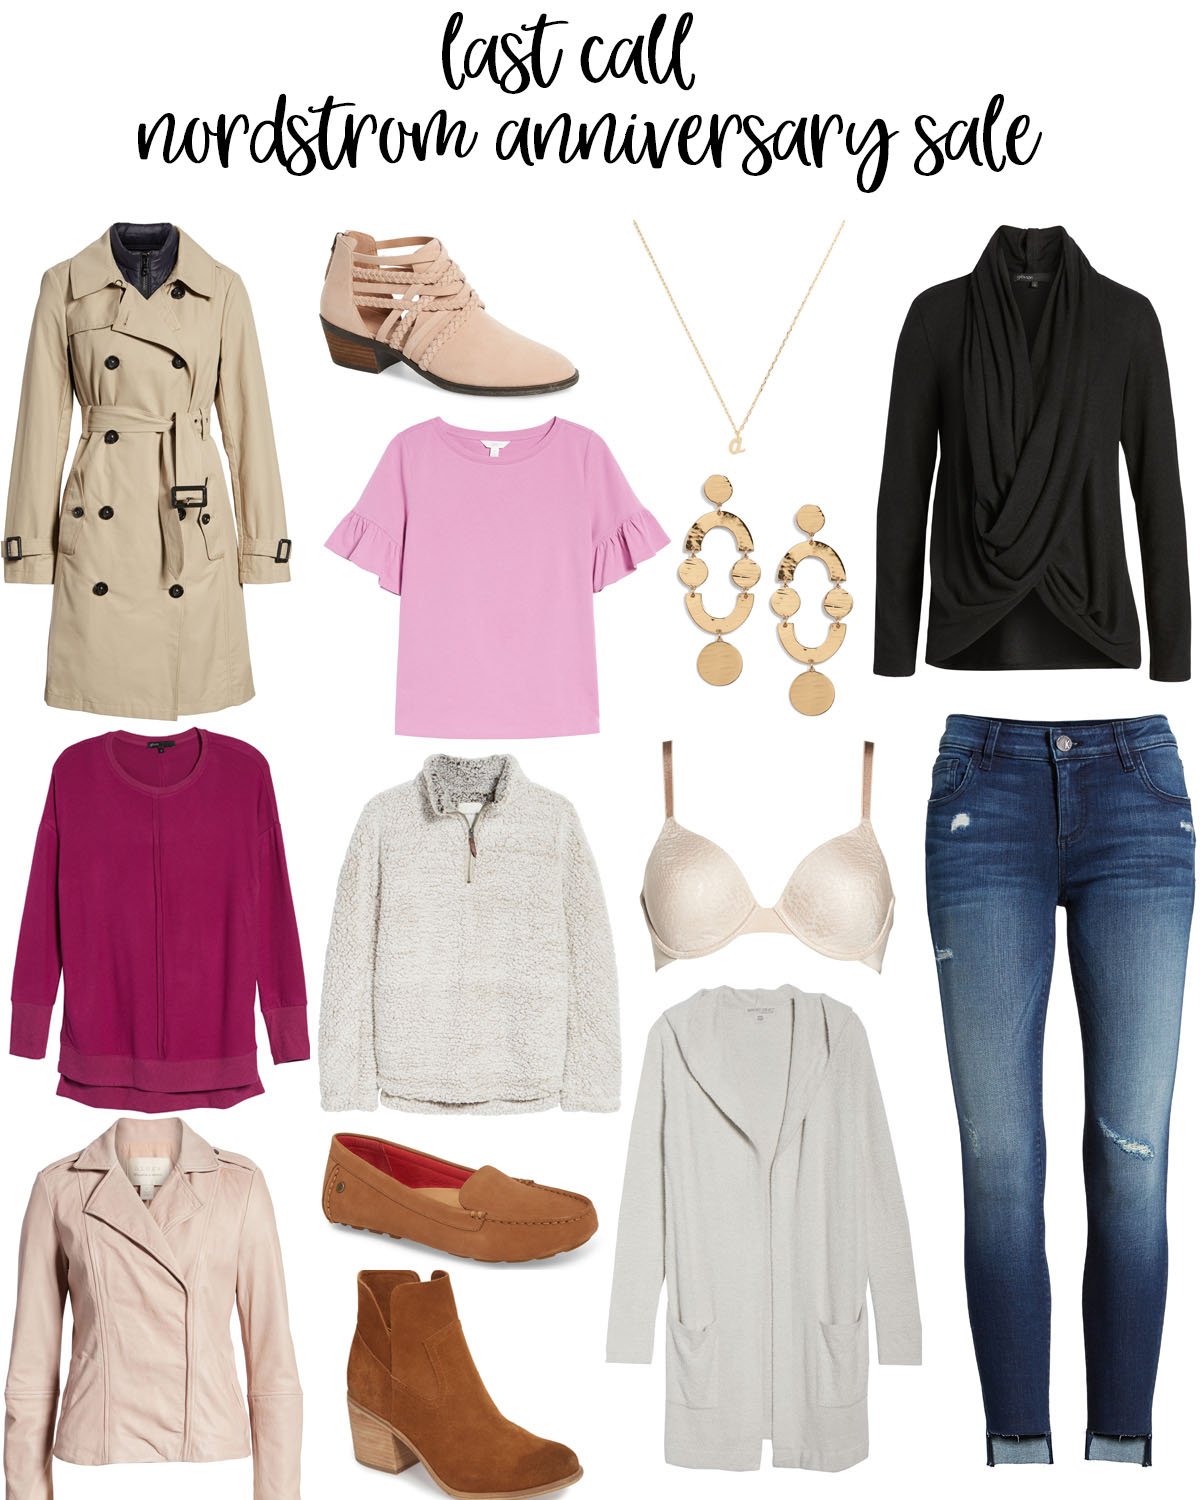 Nordstrom Anniversary Sale favorites featured by Houston fashion blogger, Fancy Ashley